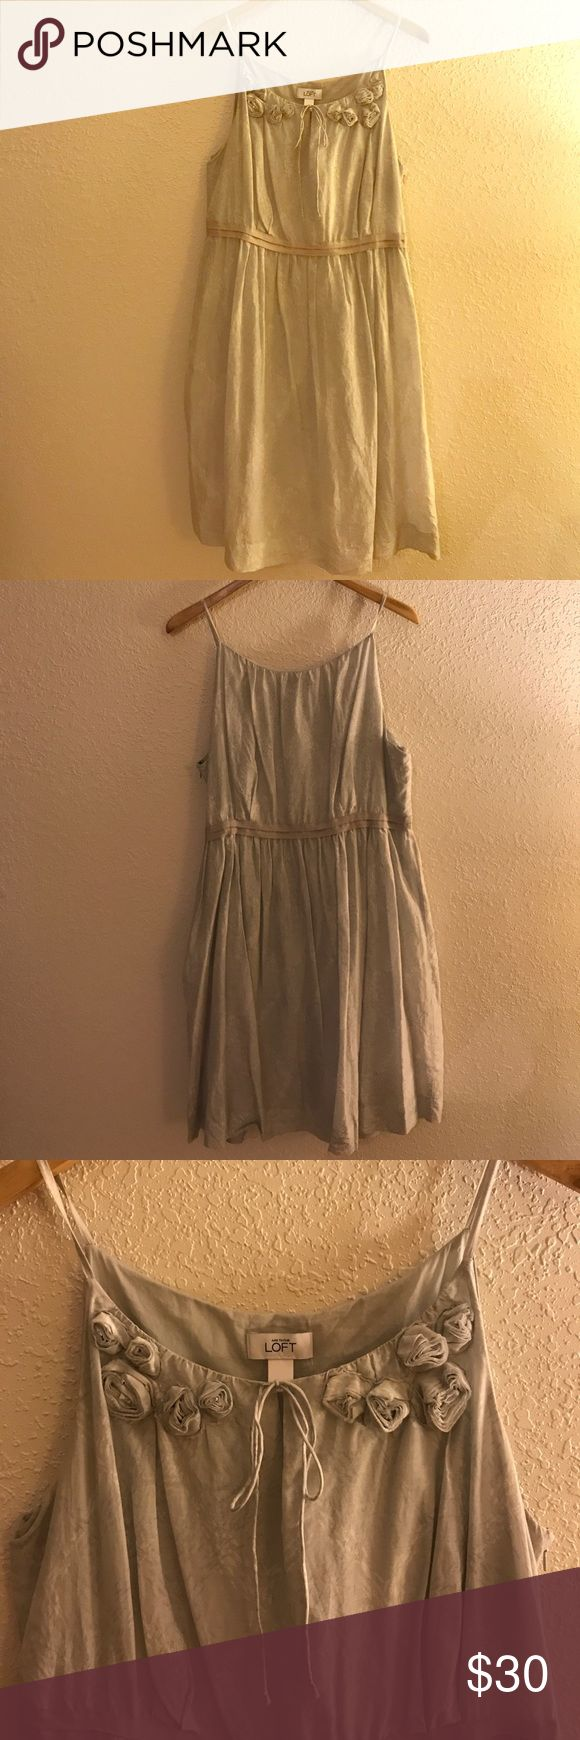 LOFT Dress Shades of gray. Shell: 70% cotton, 30% silk. Lining: 100% cotton. Open to offers! LOFT Dresses